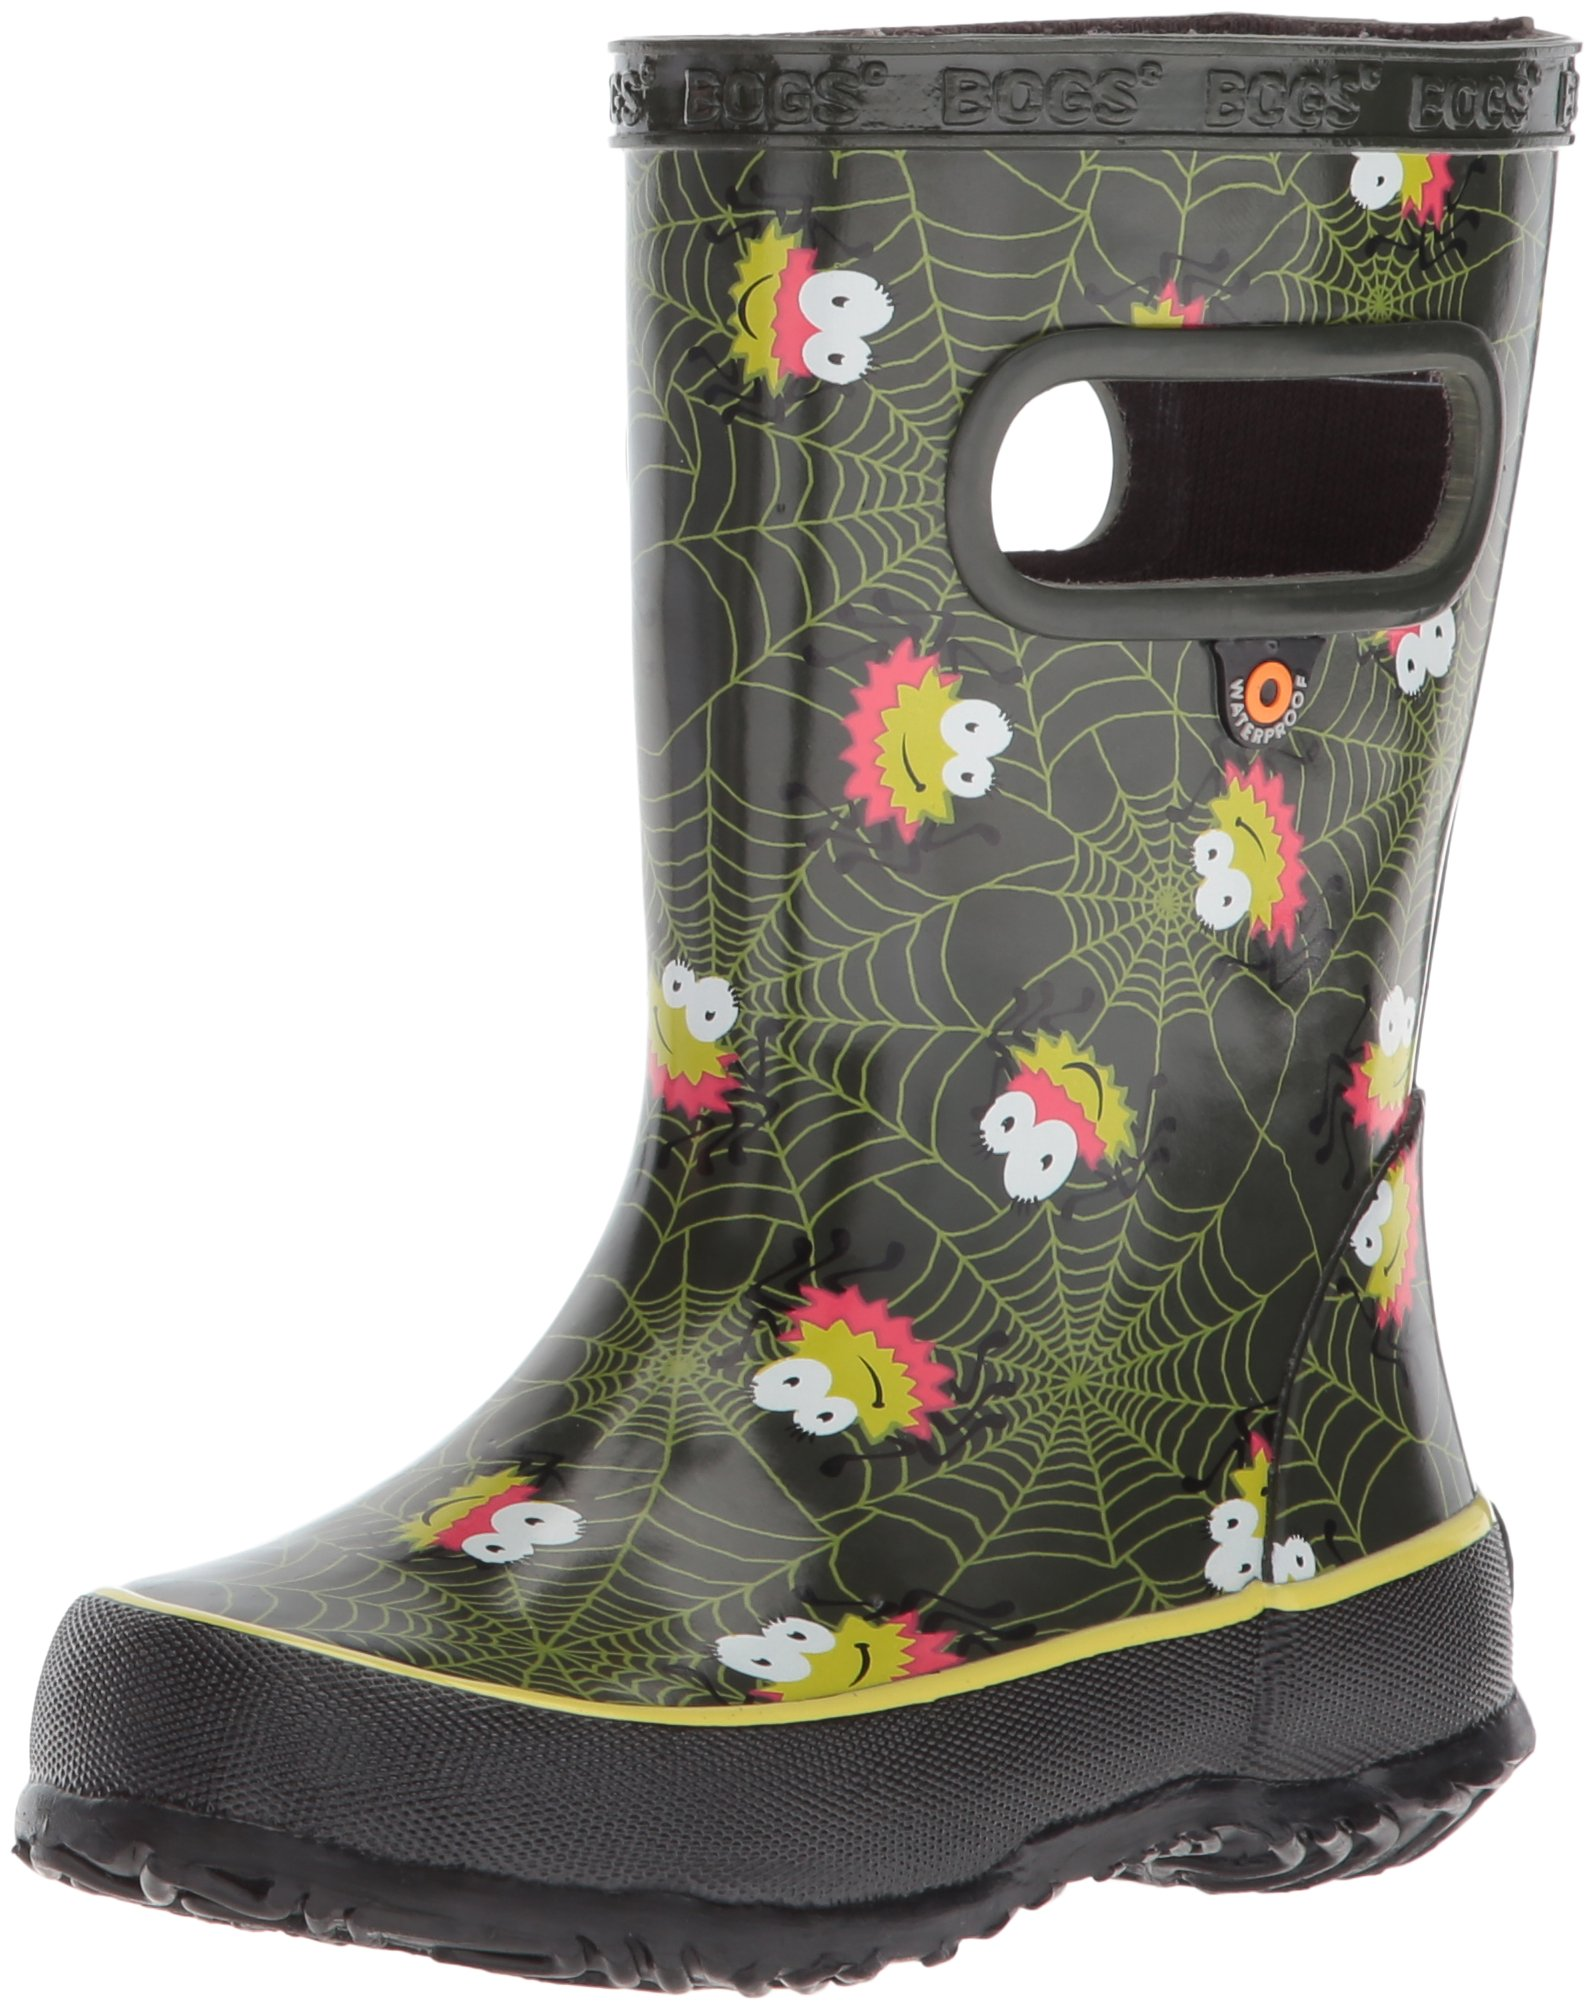 Bogs Kids' Skipper Waterproof Rubber Rain Boot for Boys and Girls,Smiley Spiders/Dark Green/Multi,11 M US Little Kid